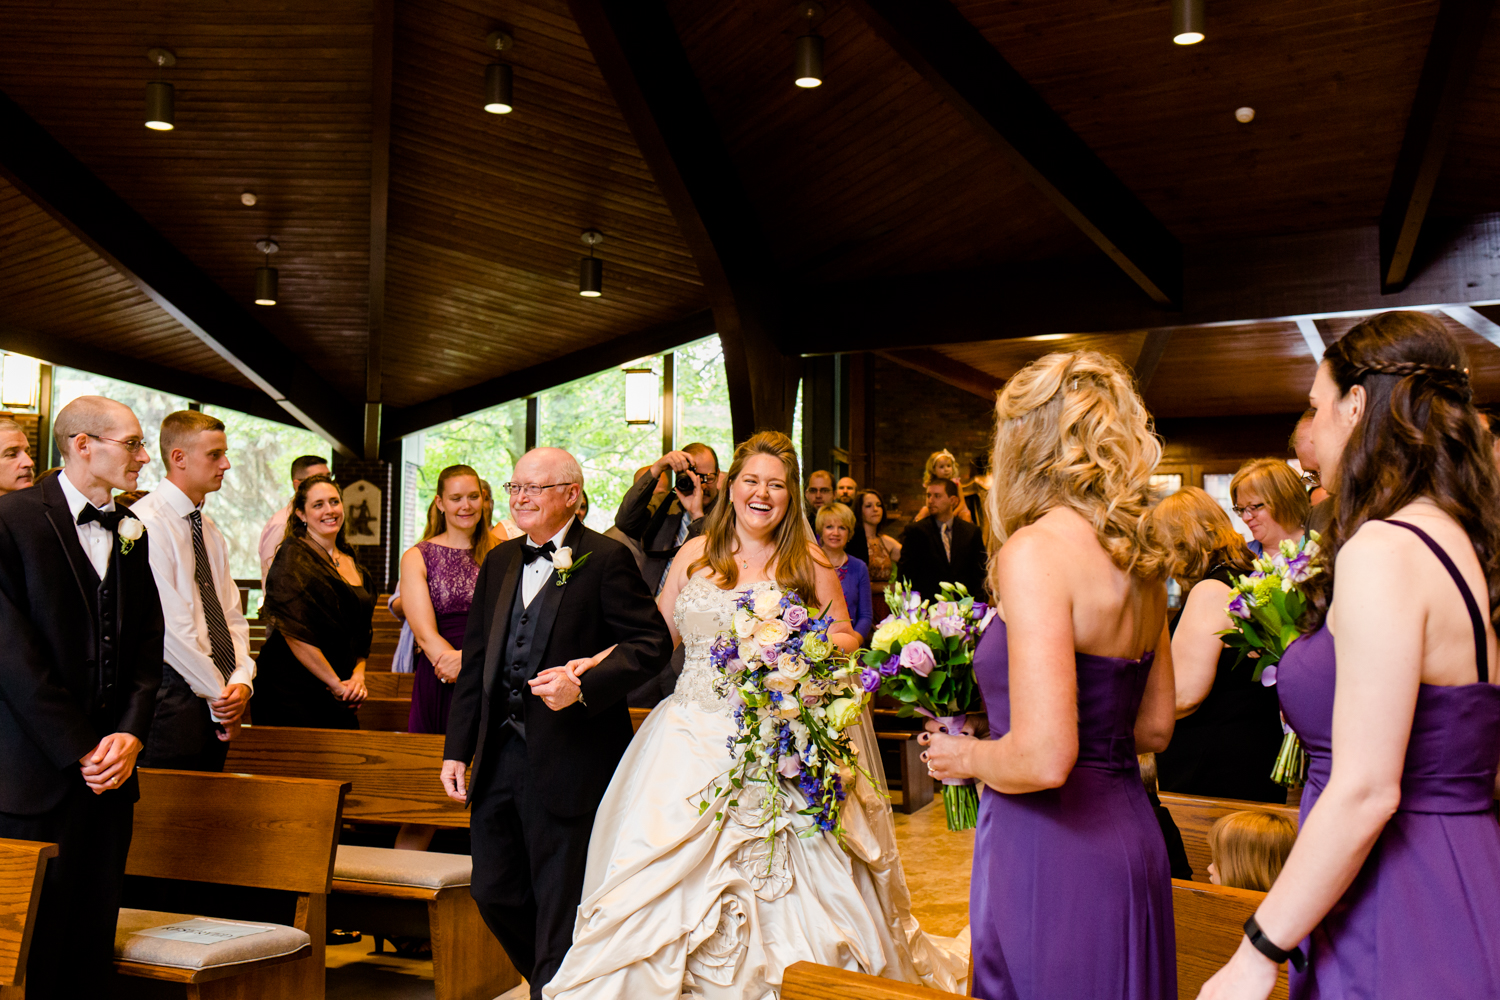 Bride walks down the aisle with her father. She is laughing and smiling at her bridesmaids. She is in a church.